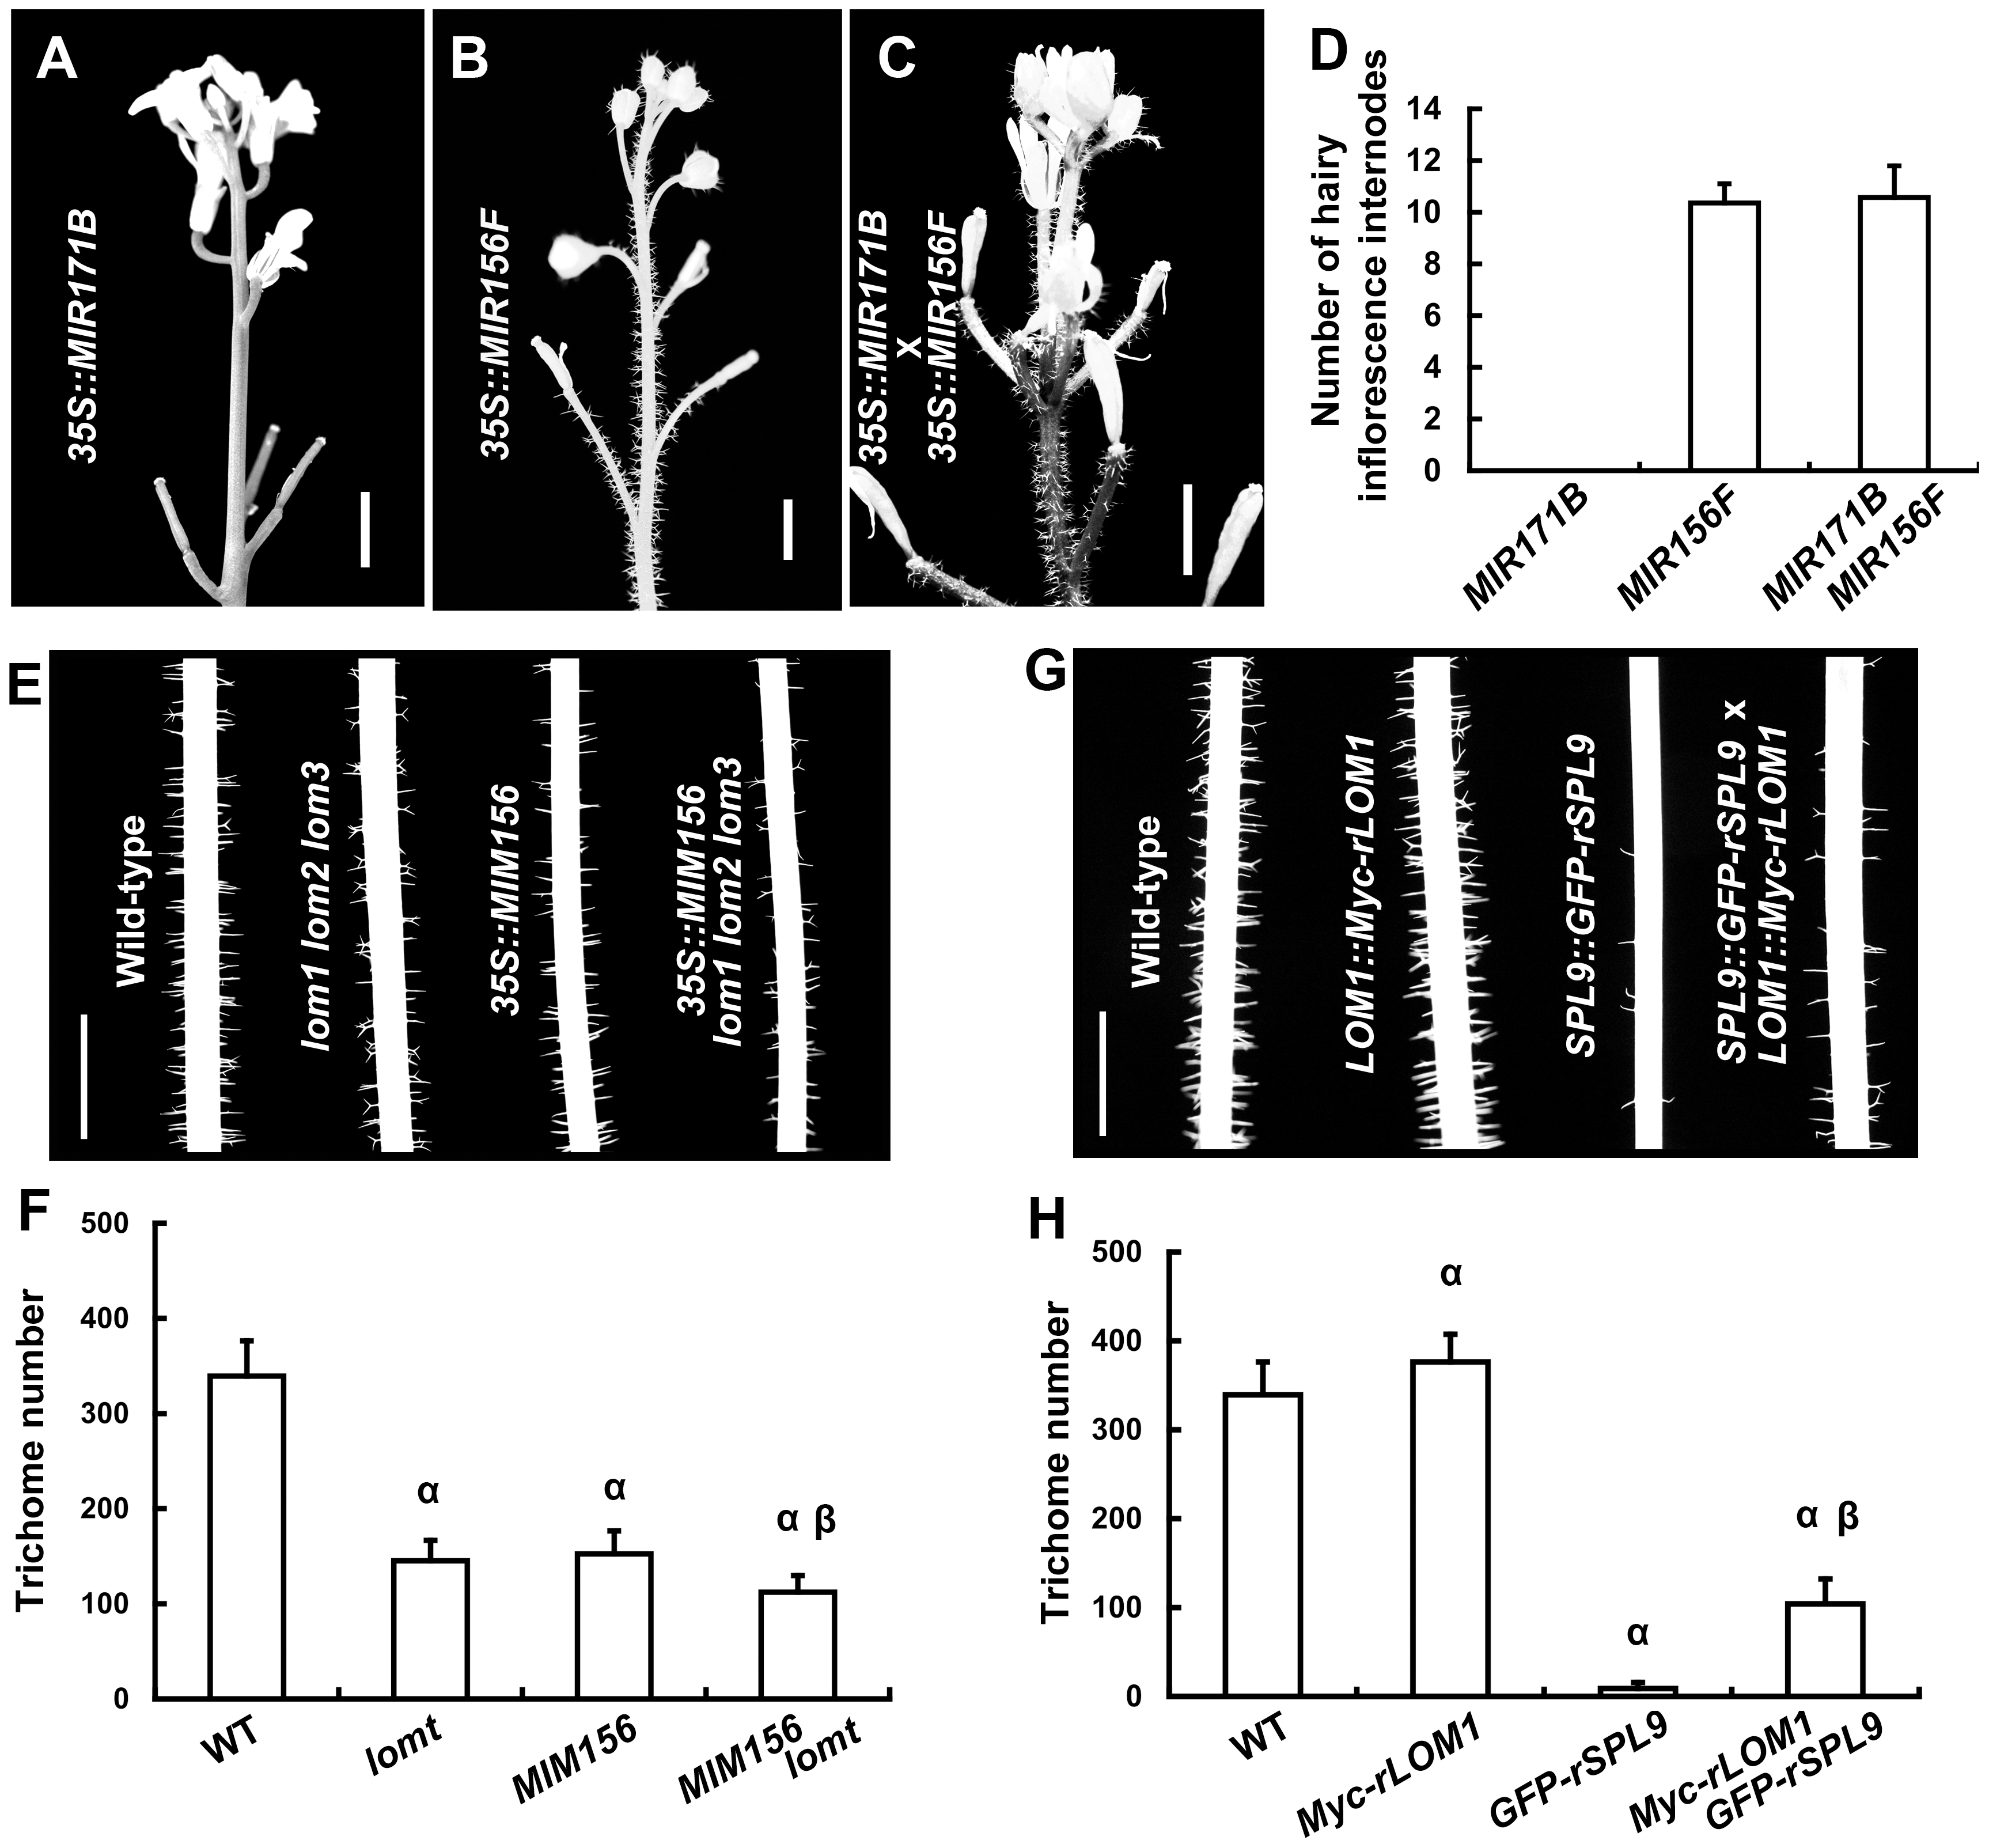 LOMs and SPLs regulate trichome formation antagonistically.